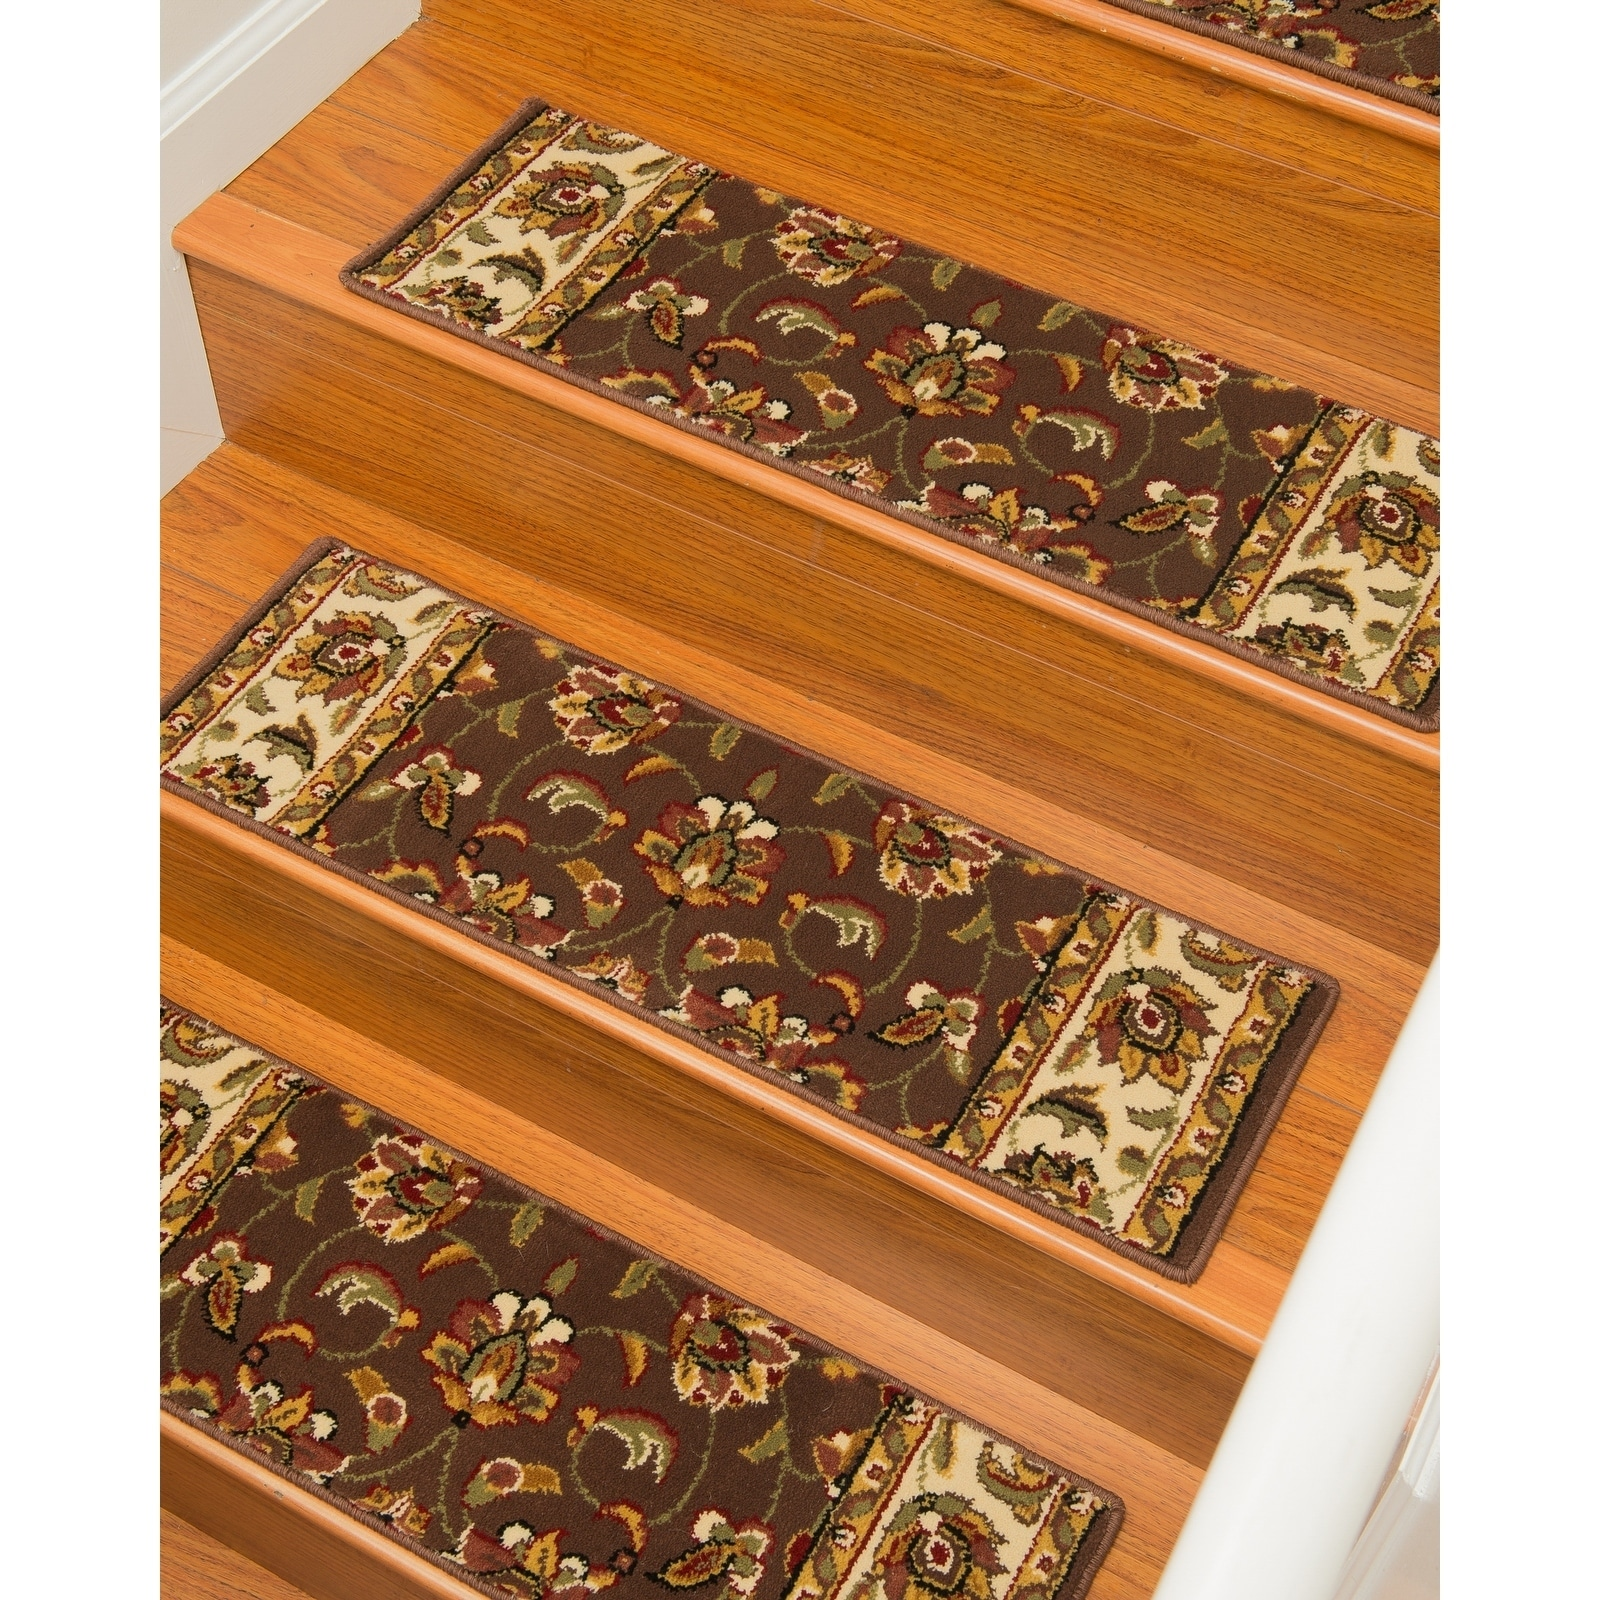 Image of: Shop Black Friday Deals On Natural Area Rugs Summit Polypropylene Stair Treads Carpet Set Of 13 9 X29 13pc 9 X 29 Overstock 9933662